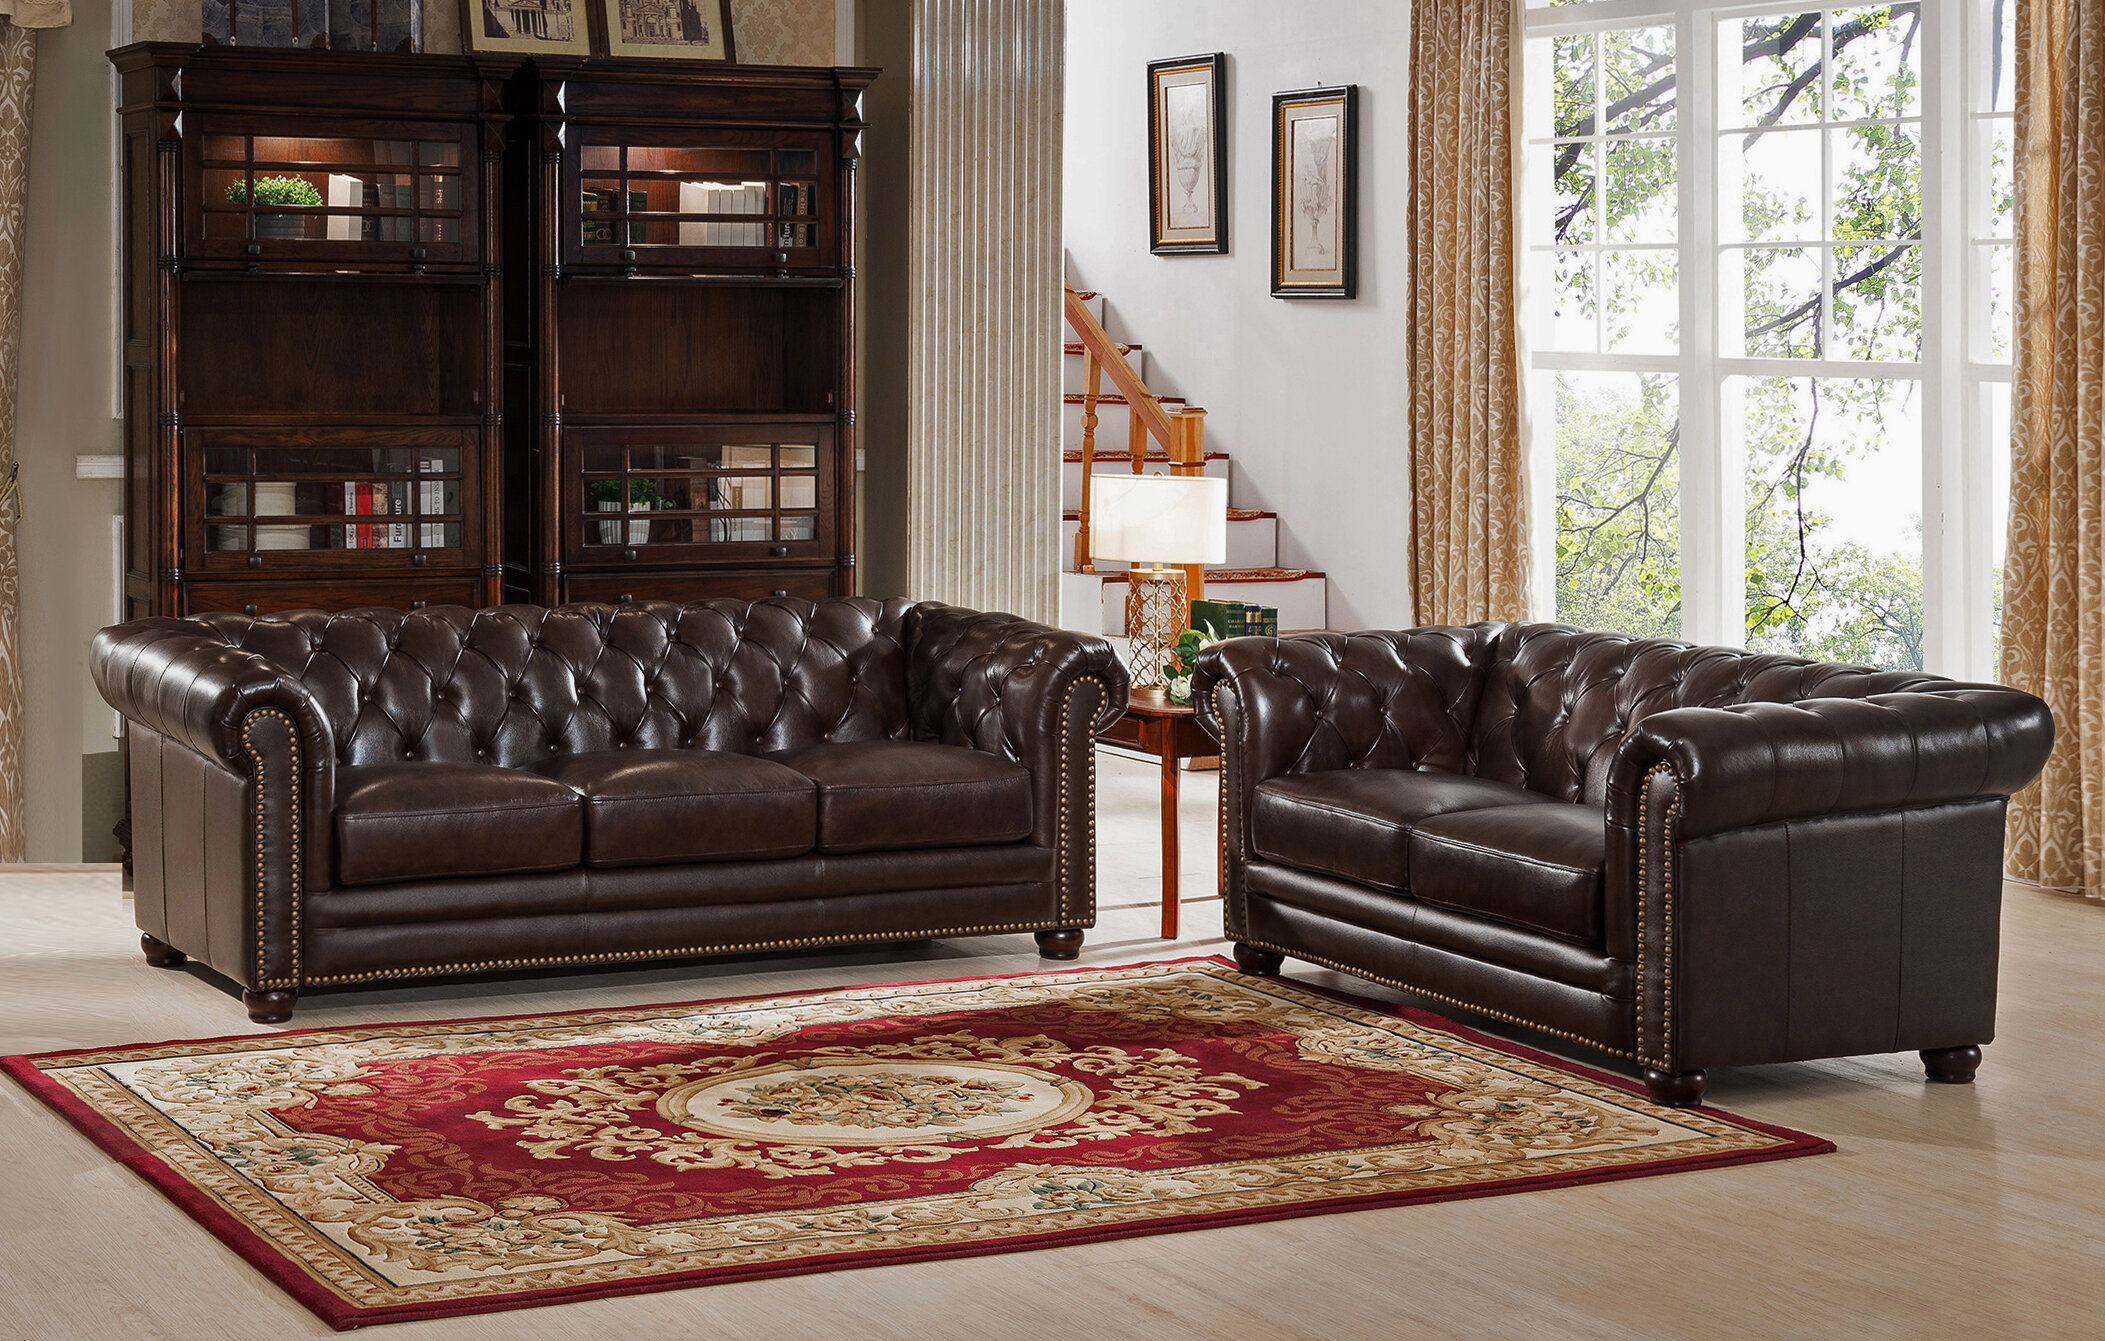 Brittany 2 Piece Leather Living Room Set